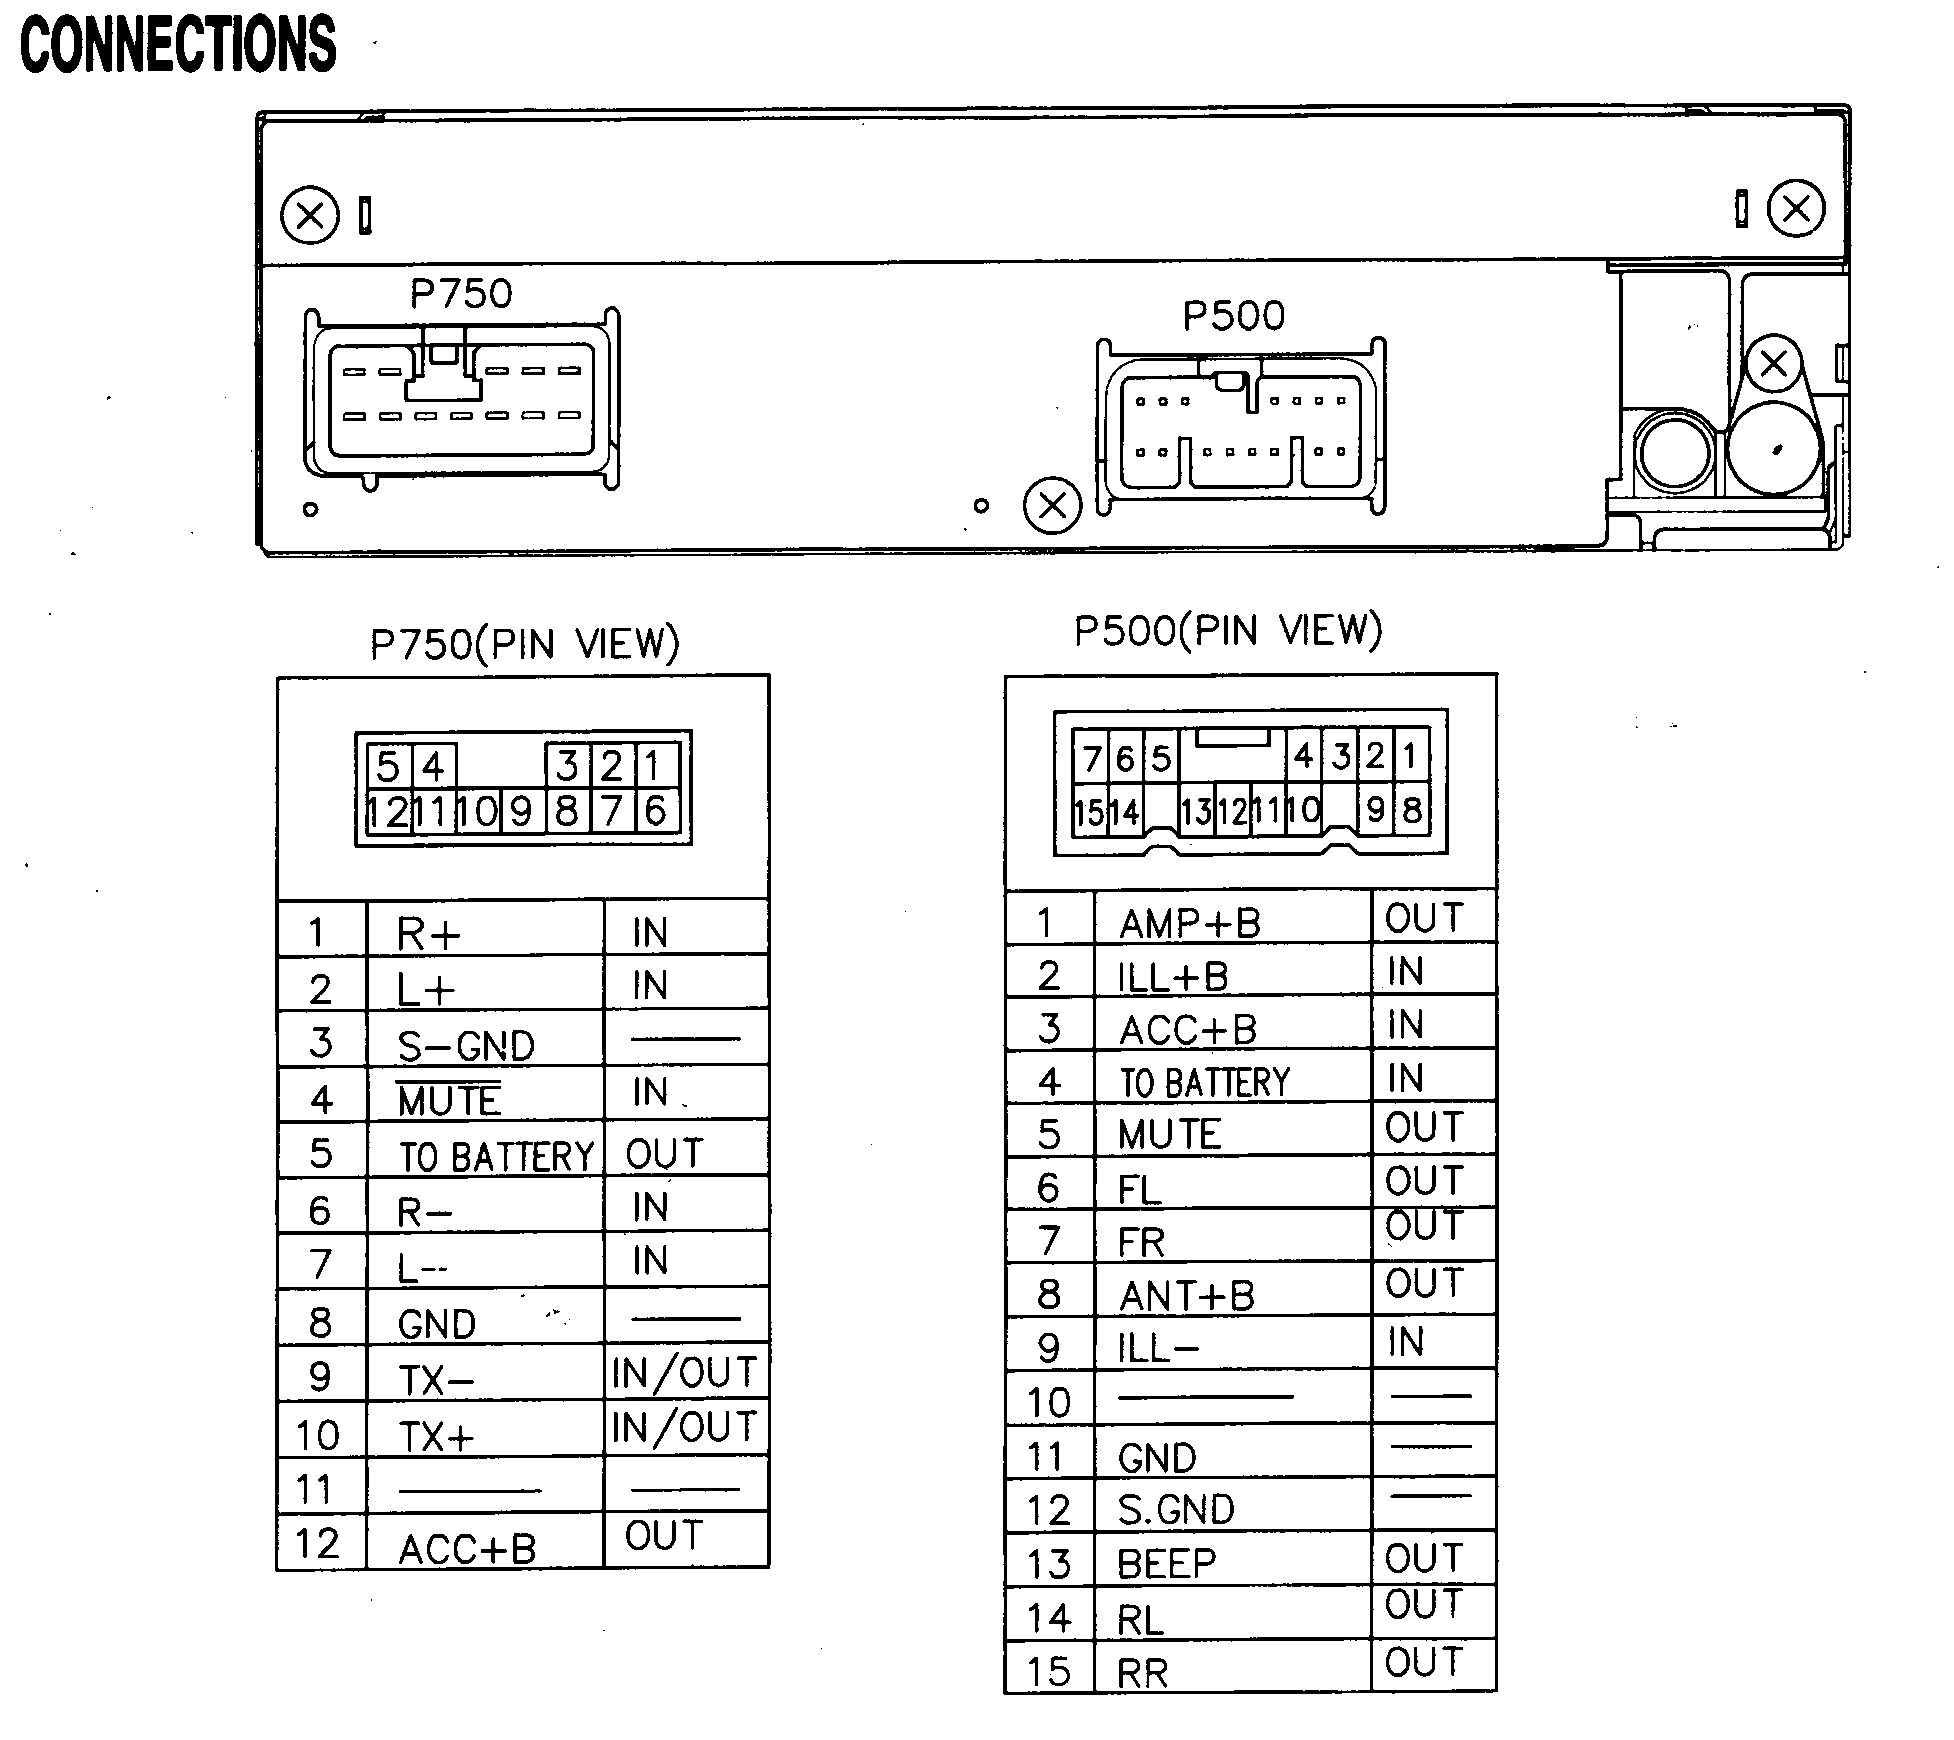 Wiring Diagram for A Jvc Car Stereo Connector 2000 Connectors Wiring Diagram Get Free Image About Wiring Of Wiring Diagram for A Jvc Car Stereo